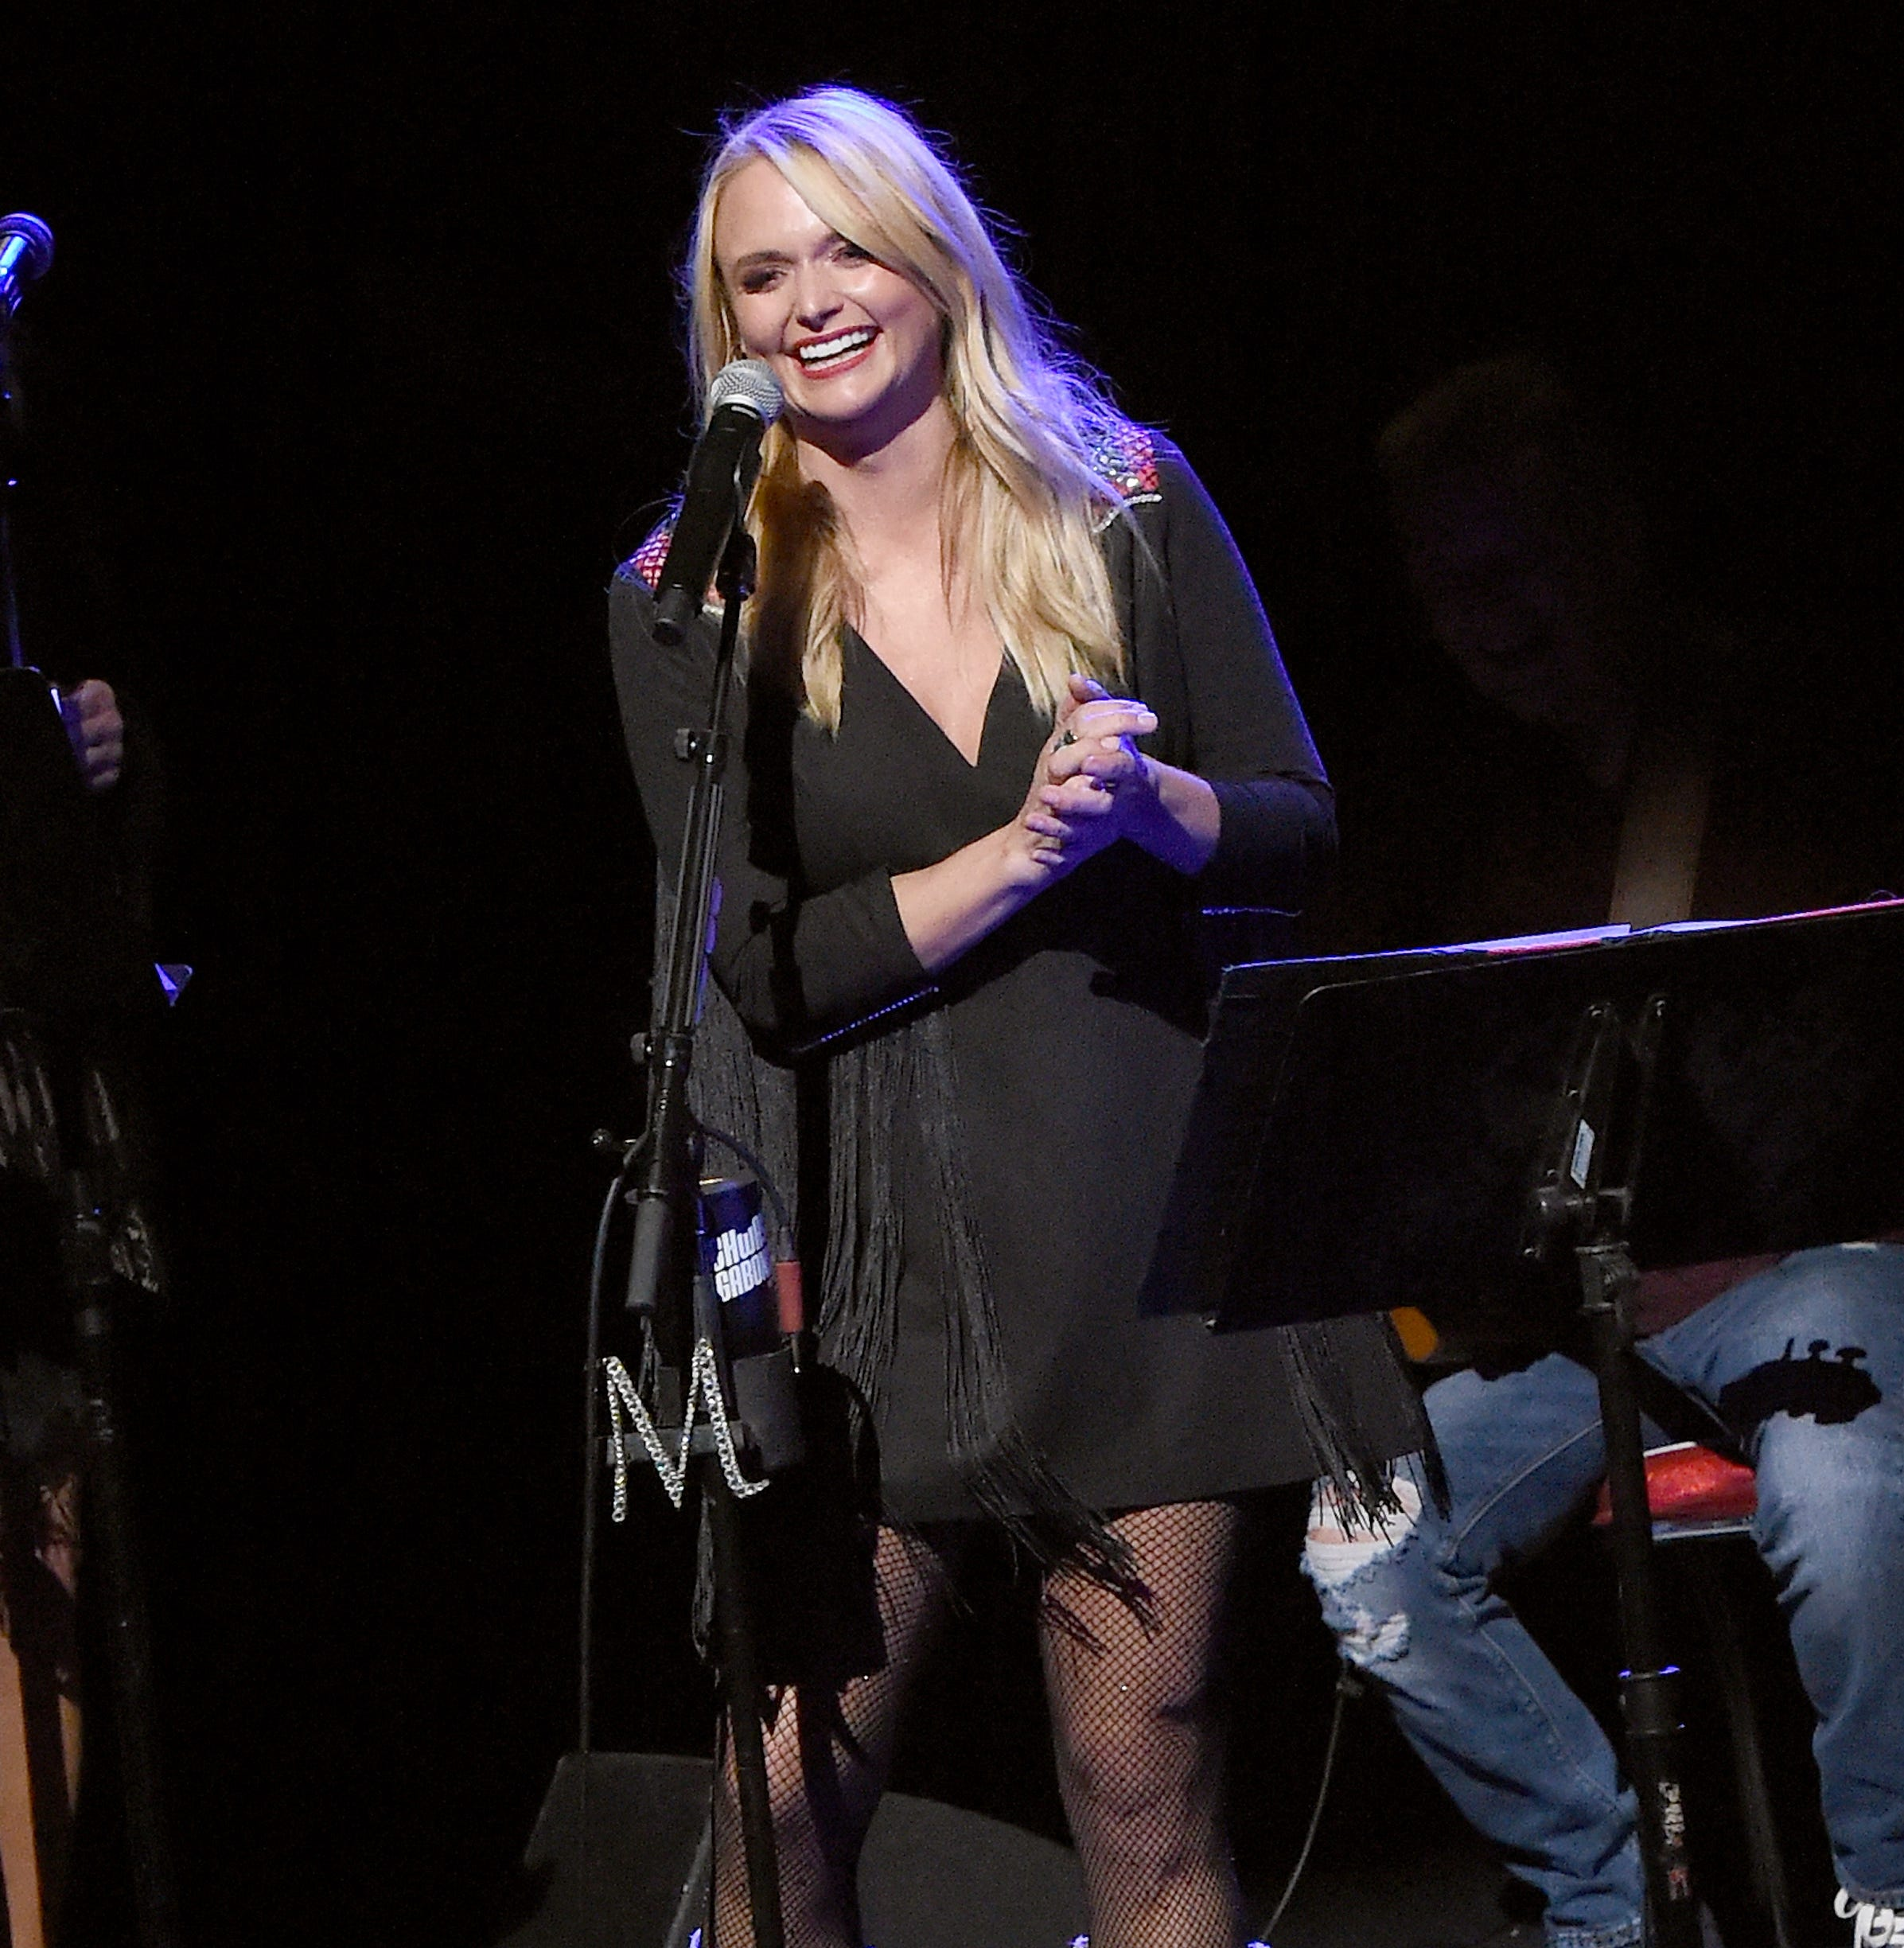 Miranda Lambert plays 'the ones that got away' at Hall of Fame residency